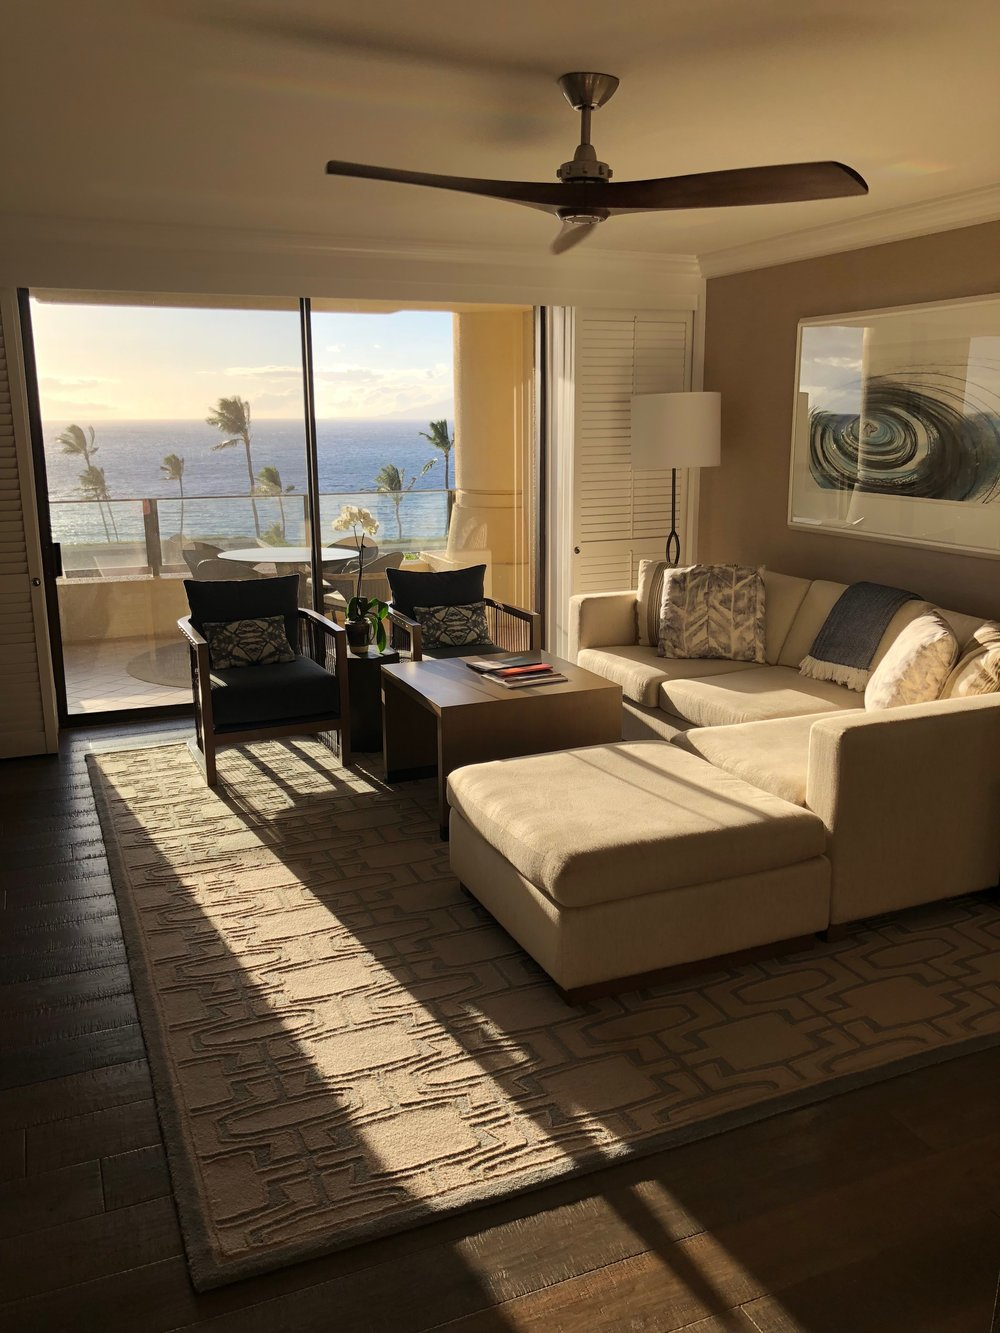 Living room of the Ocean View Suite